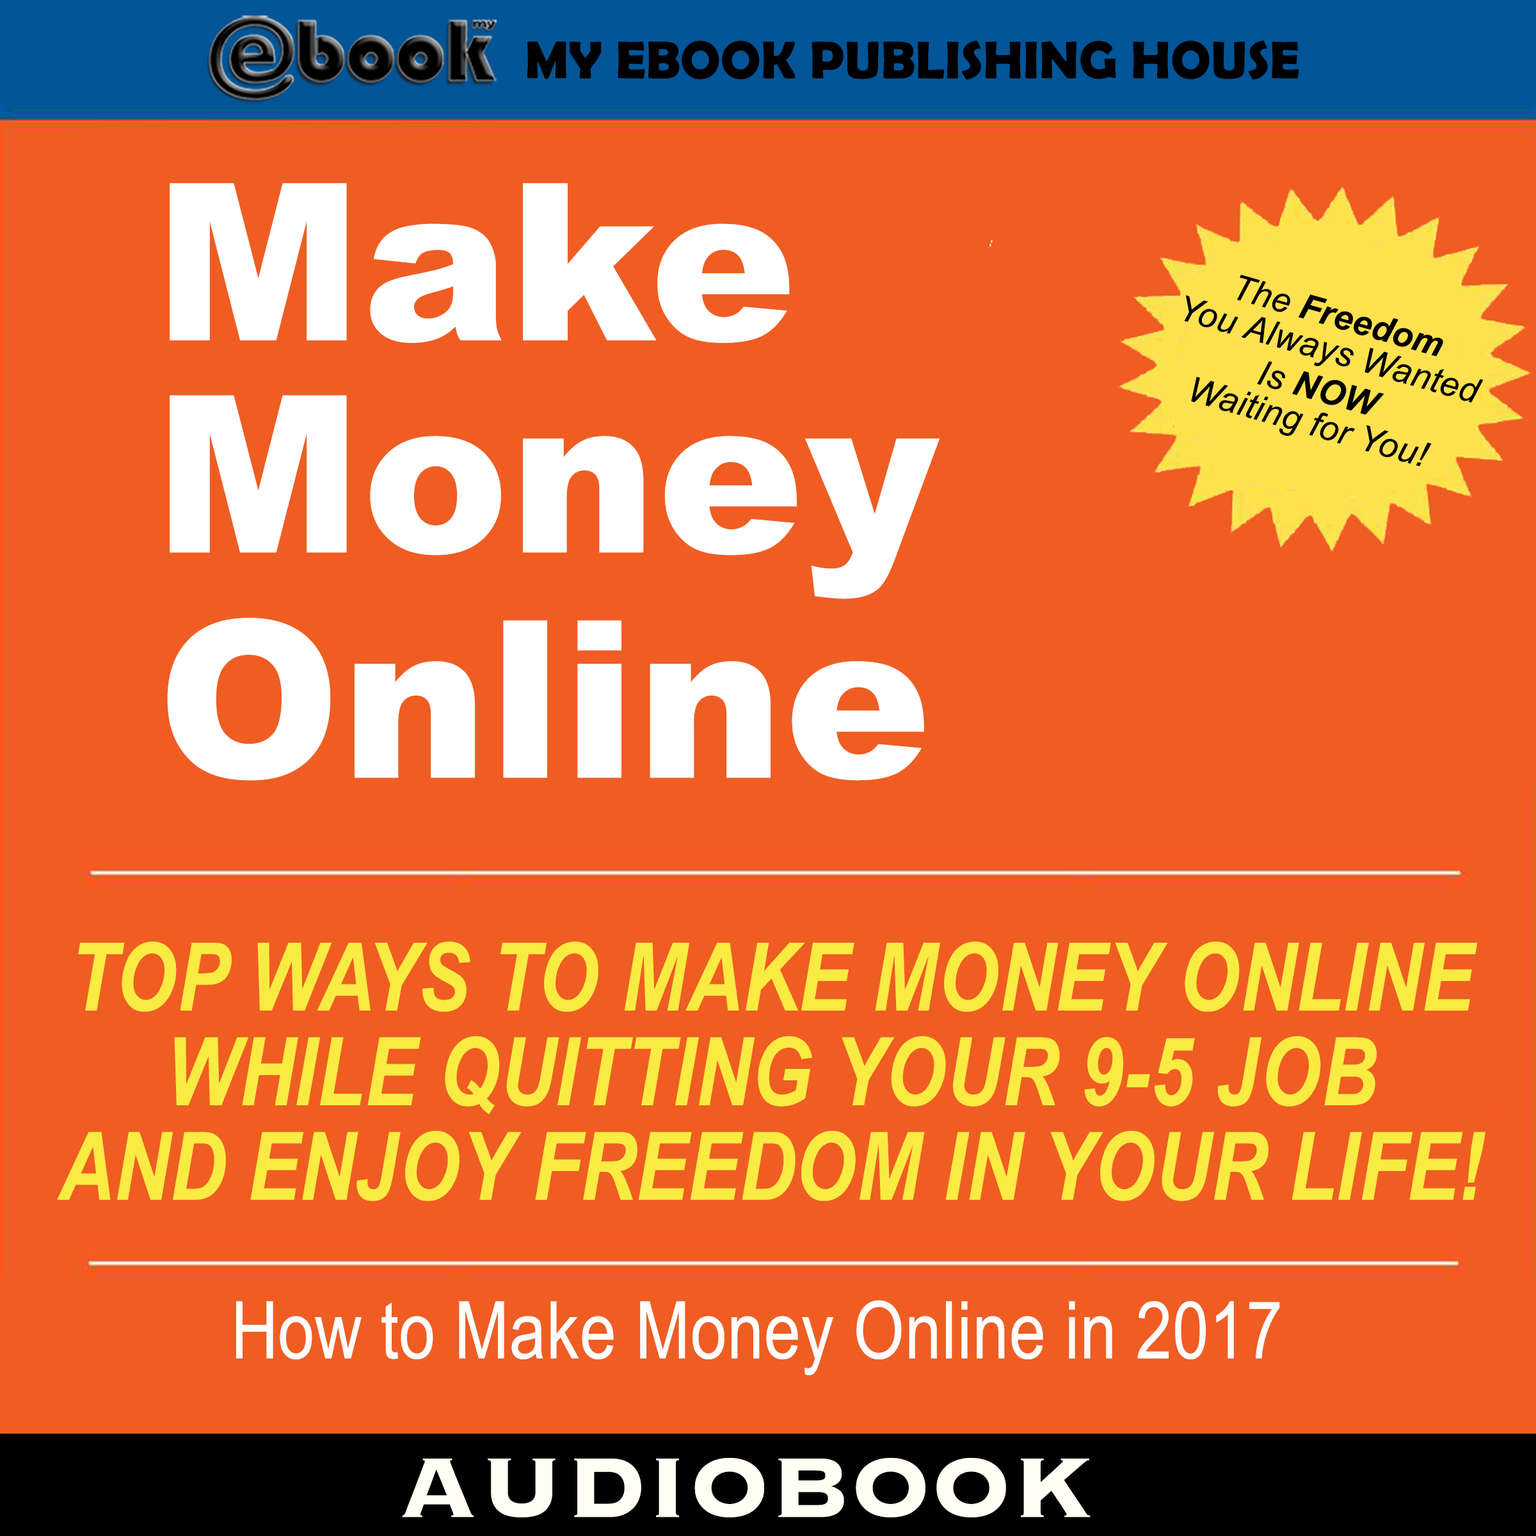 Make Money Online: Top Ways to Make Money Online While Quitting Your 9-5 Job and Enjoy Freedom In Your Life! Audiobook, by My Ebook Publishing House